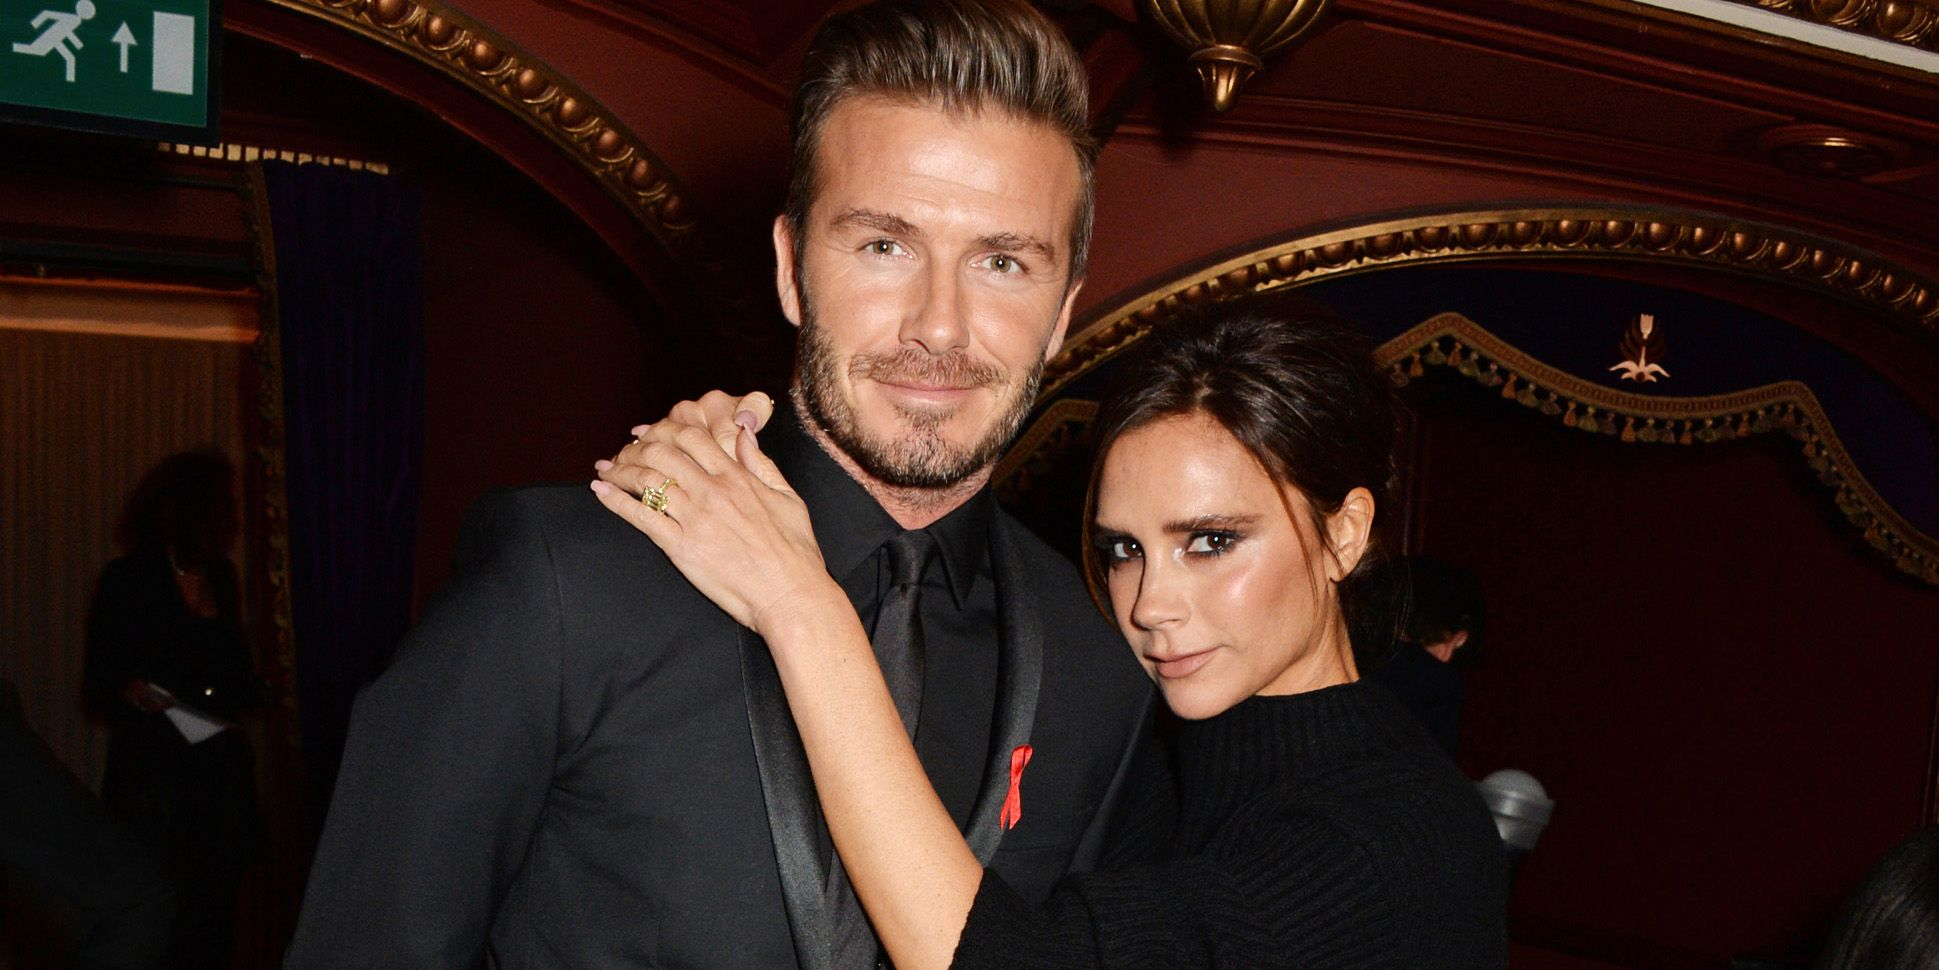 David Beckham's son surprised him on his birthday, and it's so truly